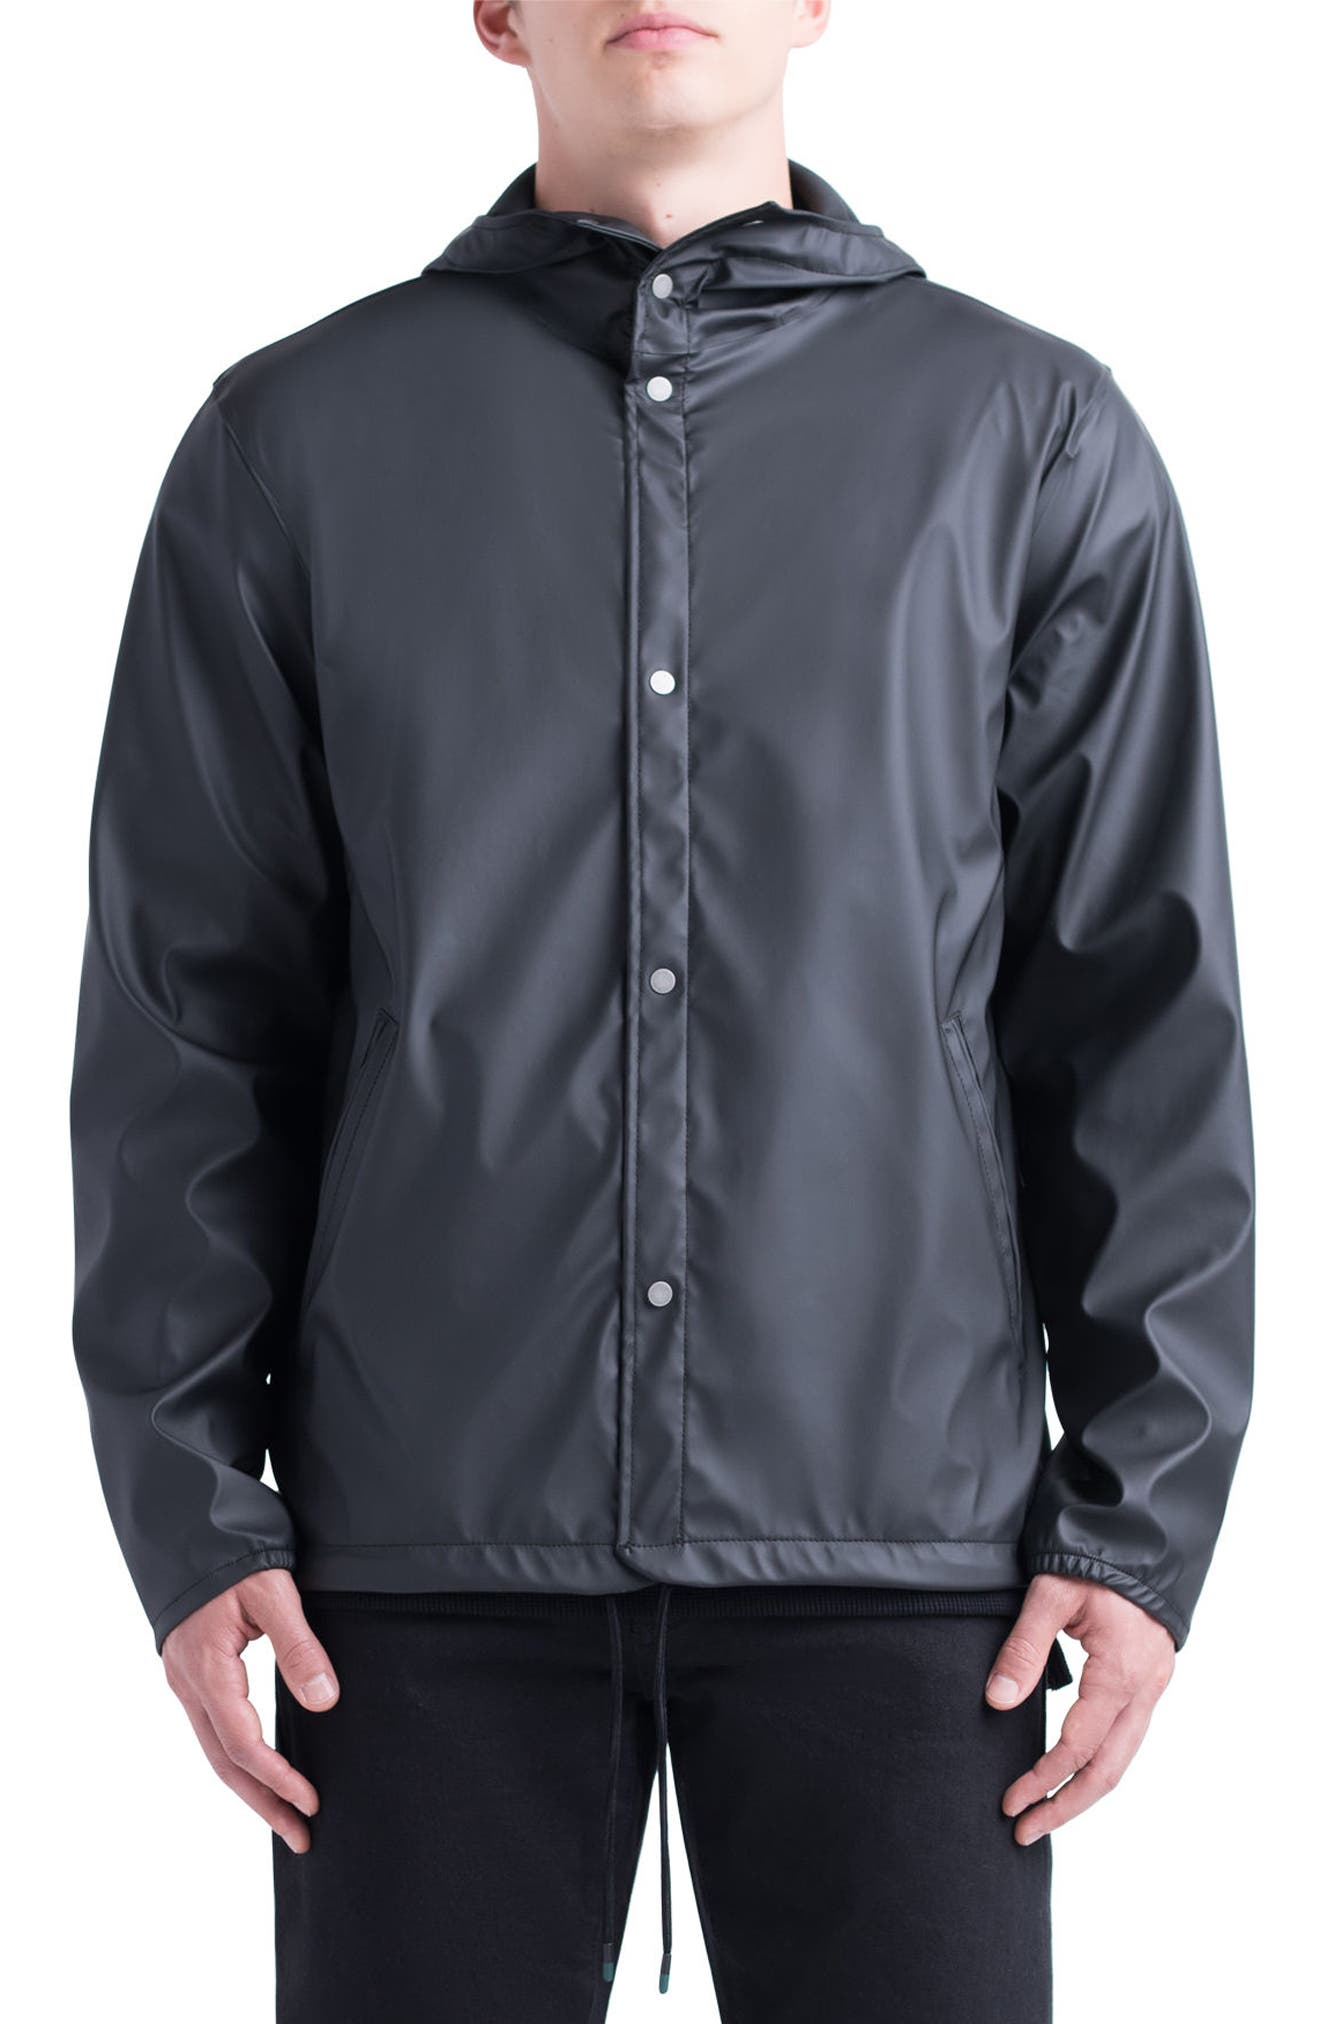 Forecast Hooded Coaches Jacket,                         Main,                         color, 002